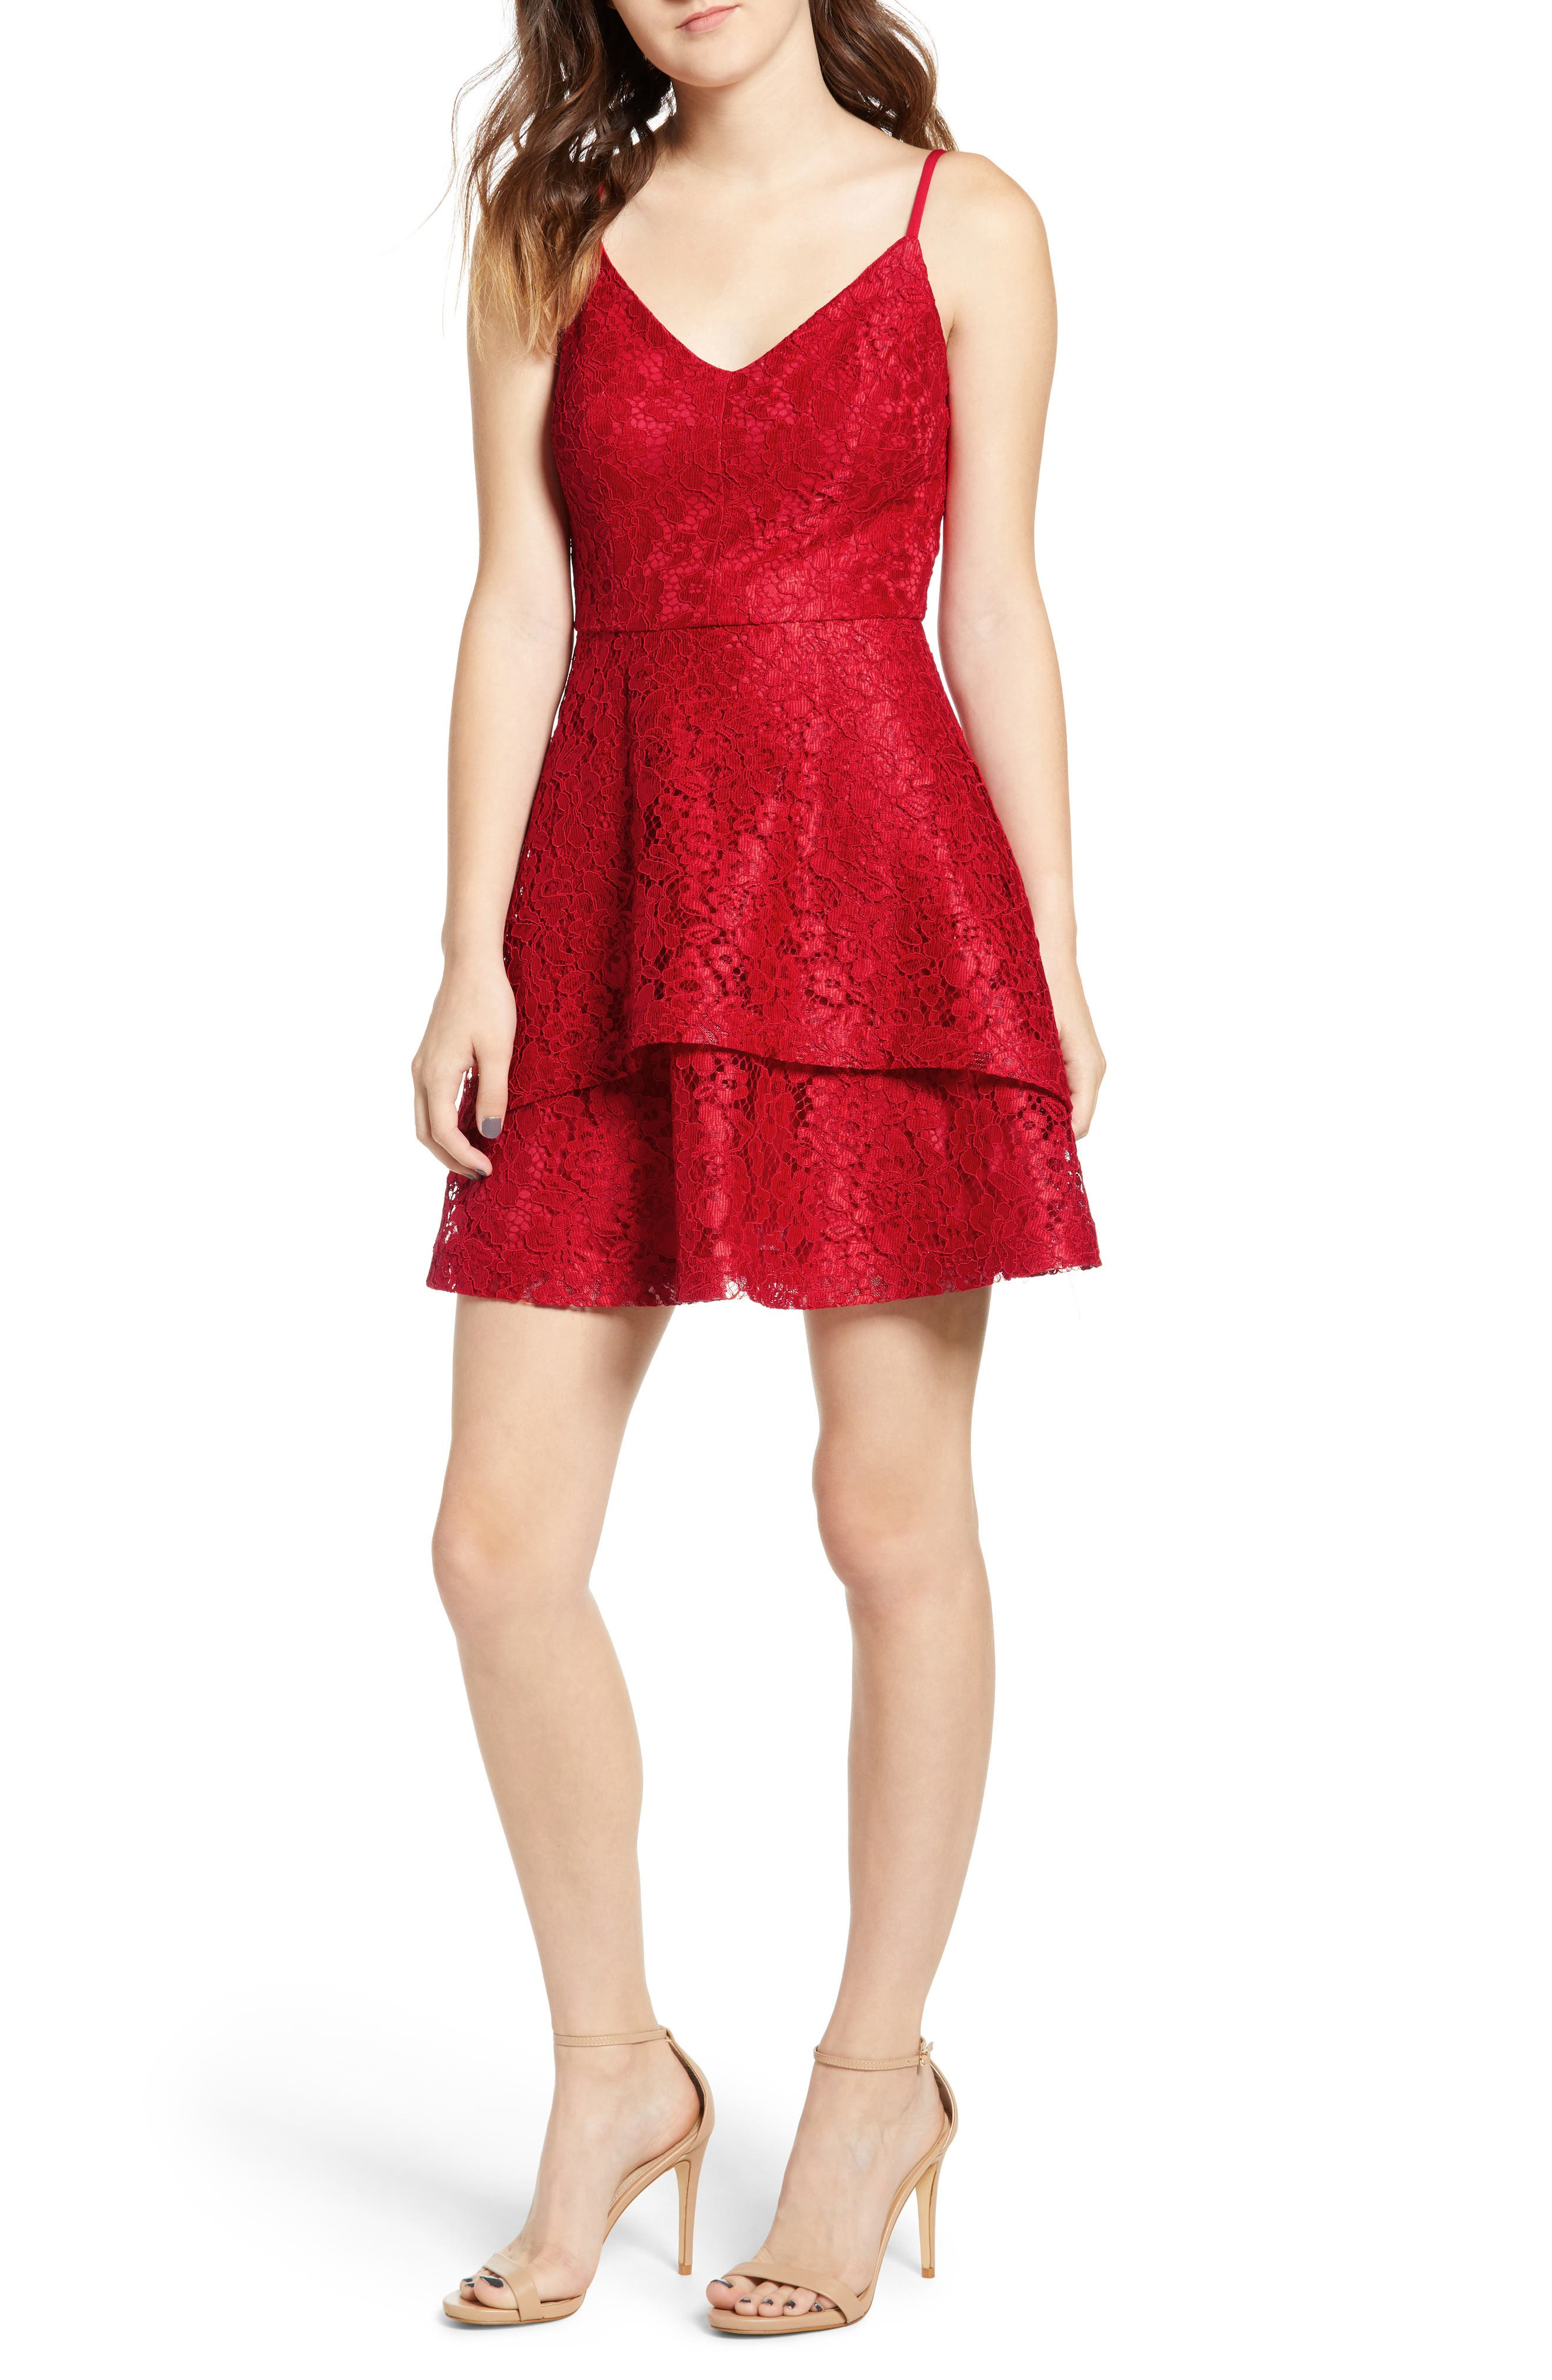 SPEECHLESS Lace Fit & Flare Dress, Main, color, 600